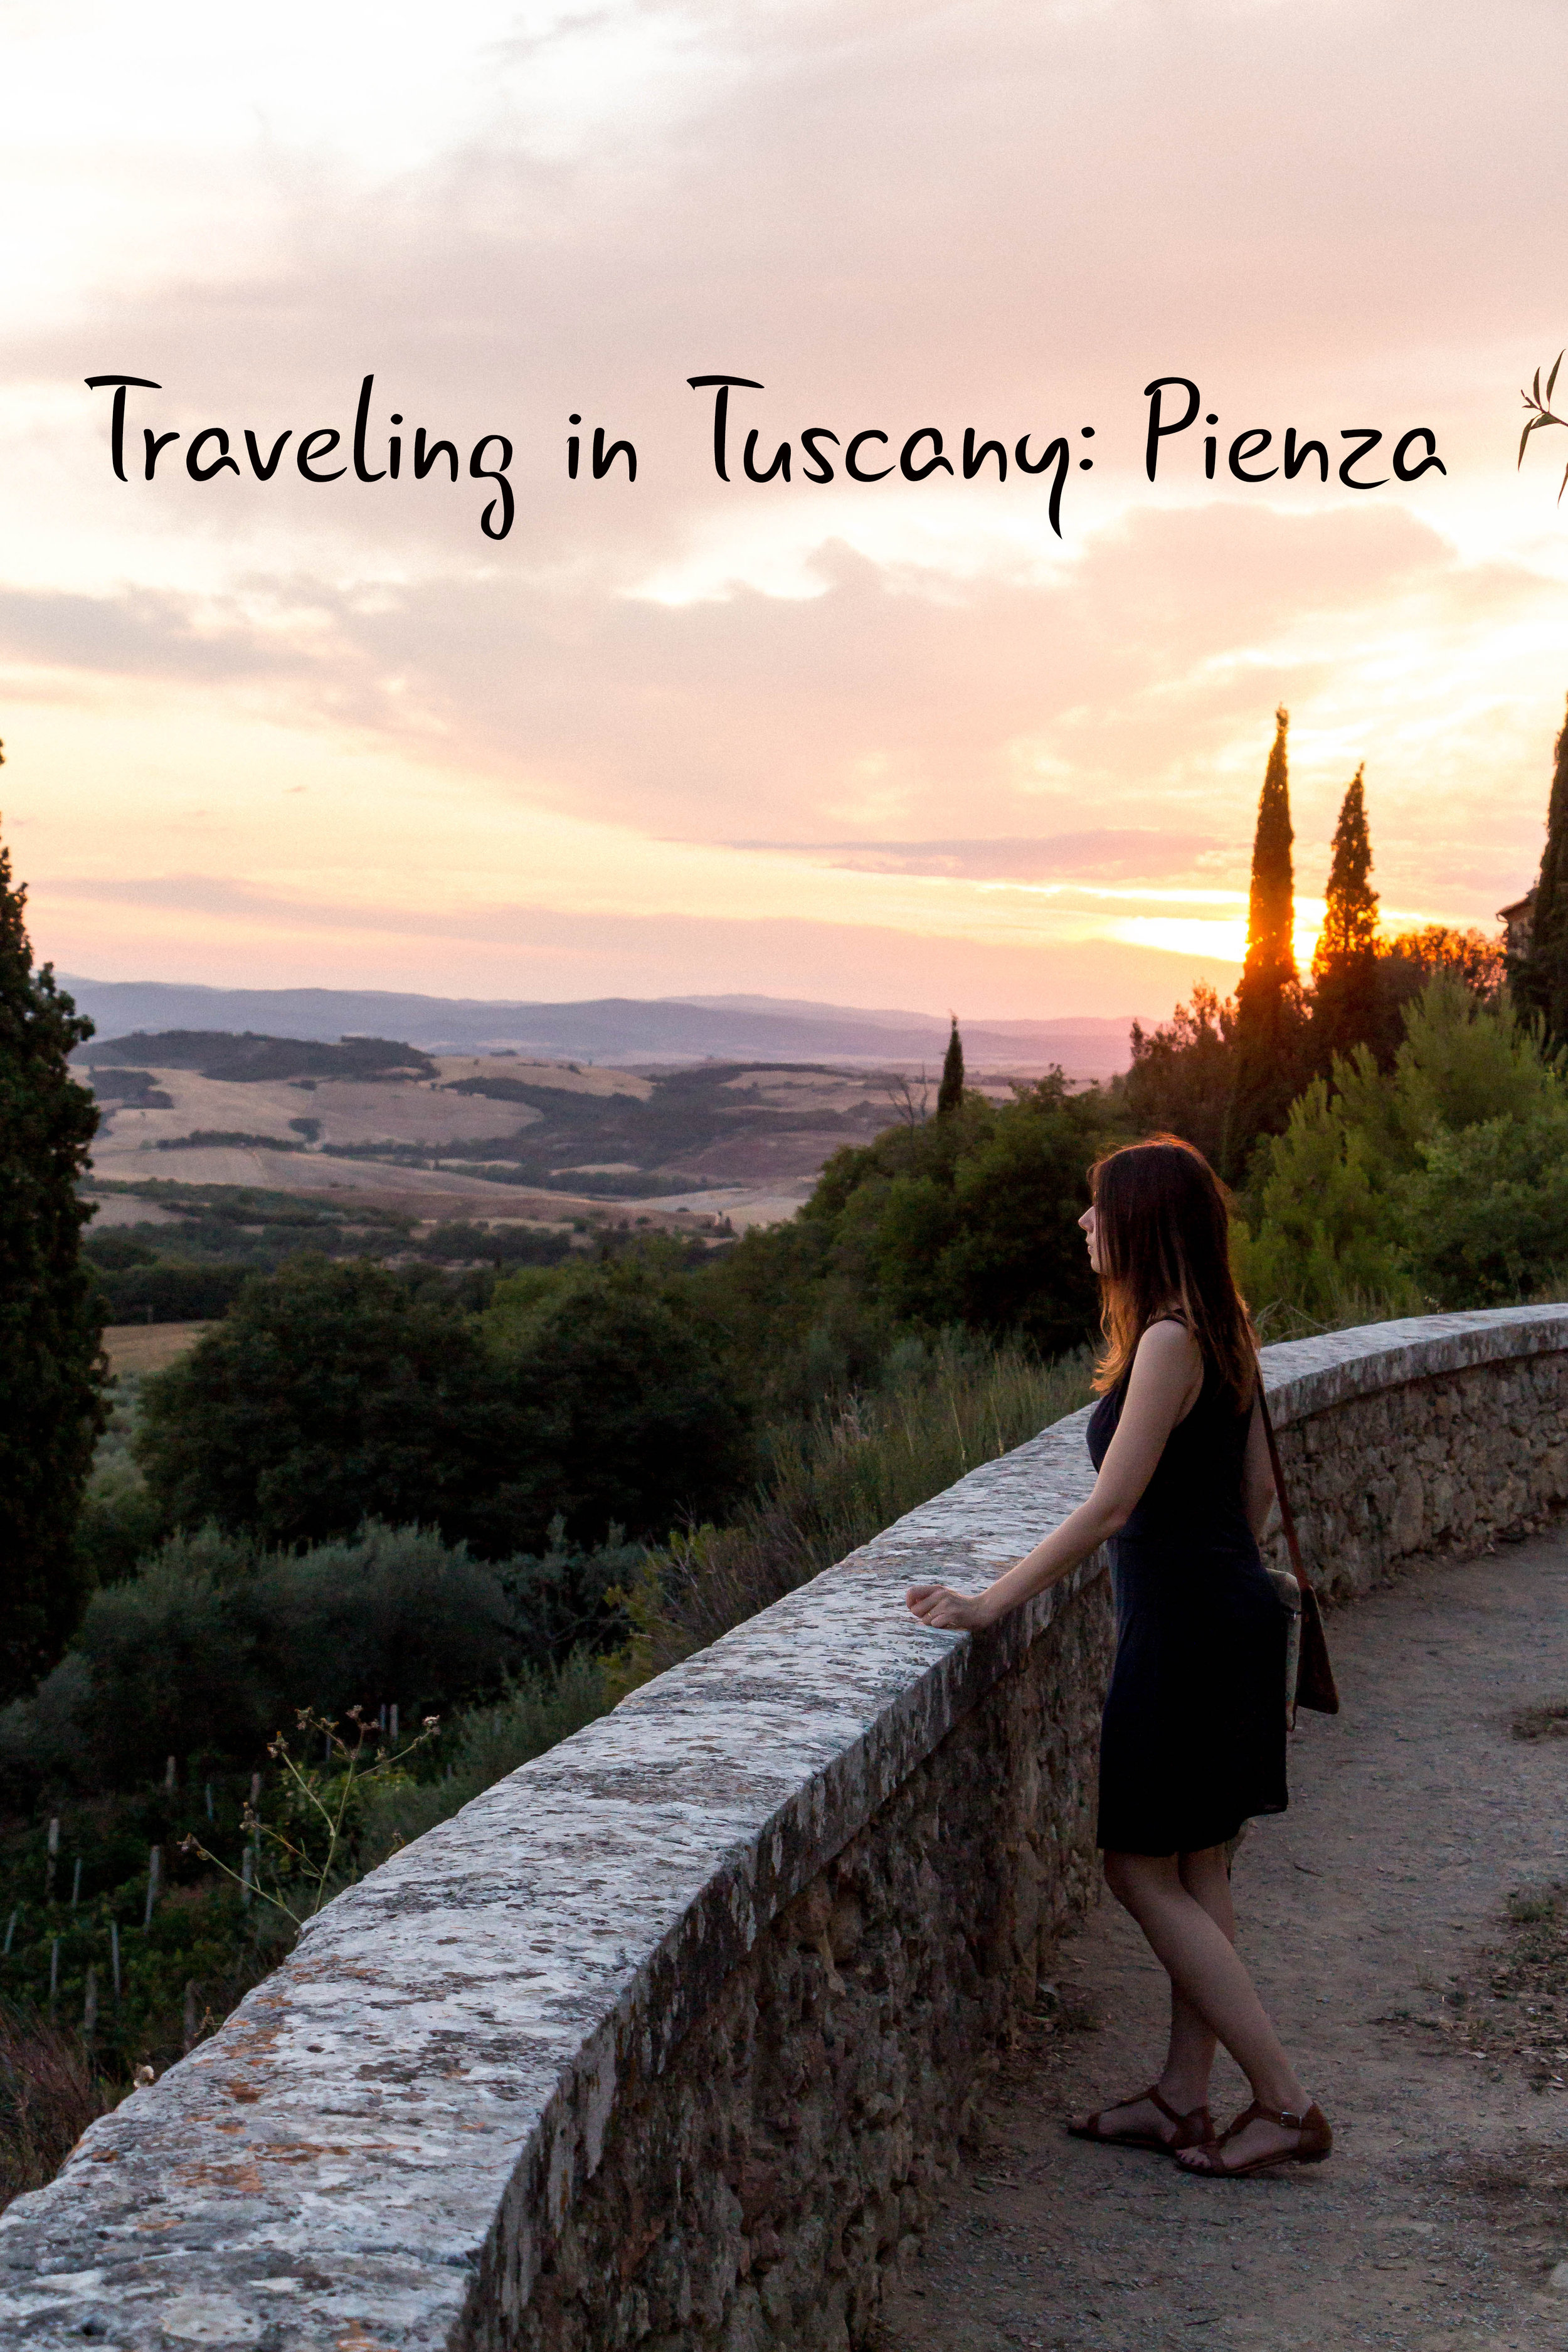 Sunset in Pienza, Tuscany